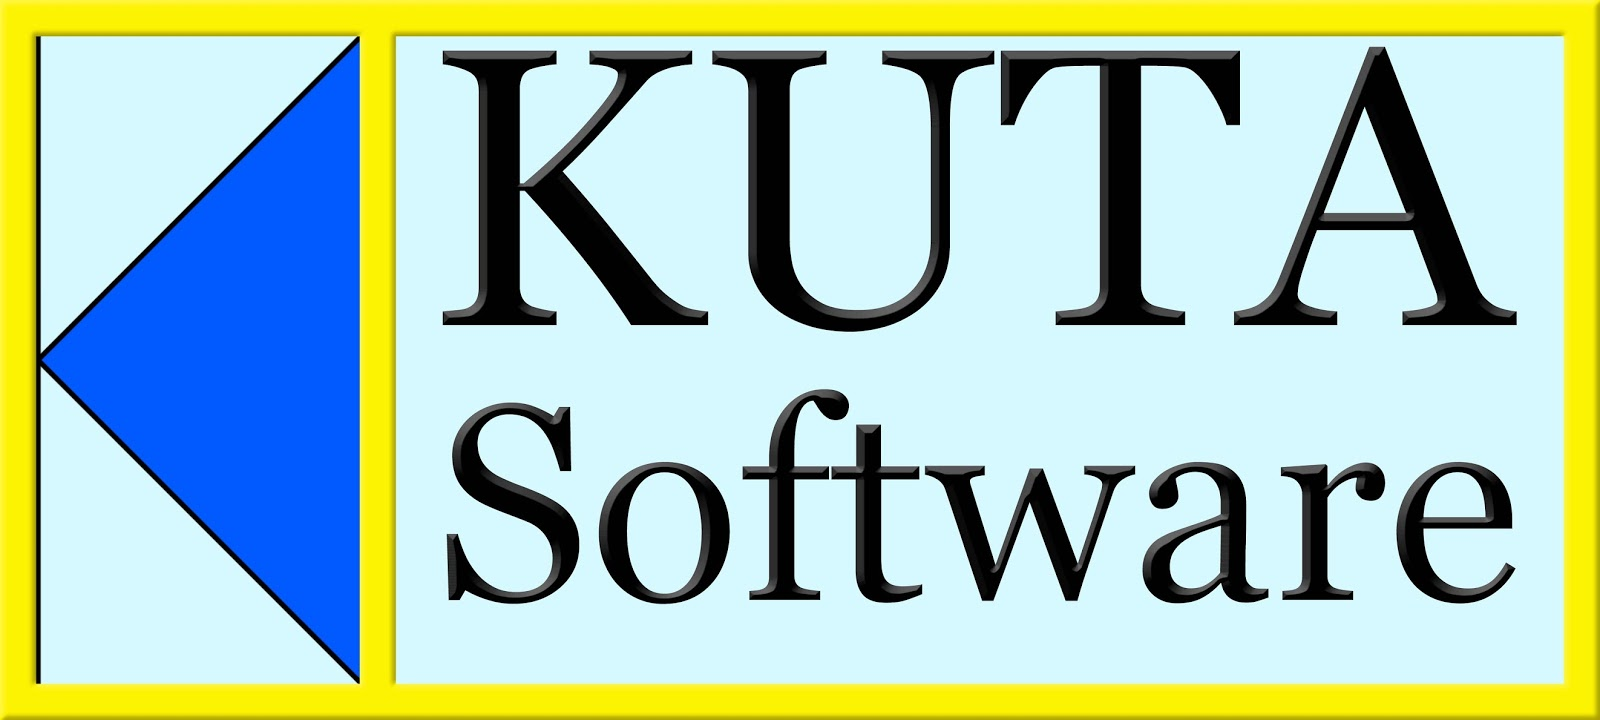 Kuta Software - Create customized math worksheets in minutes ...